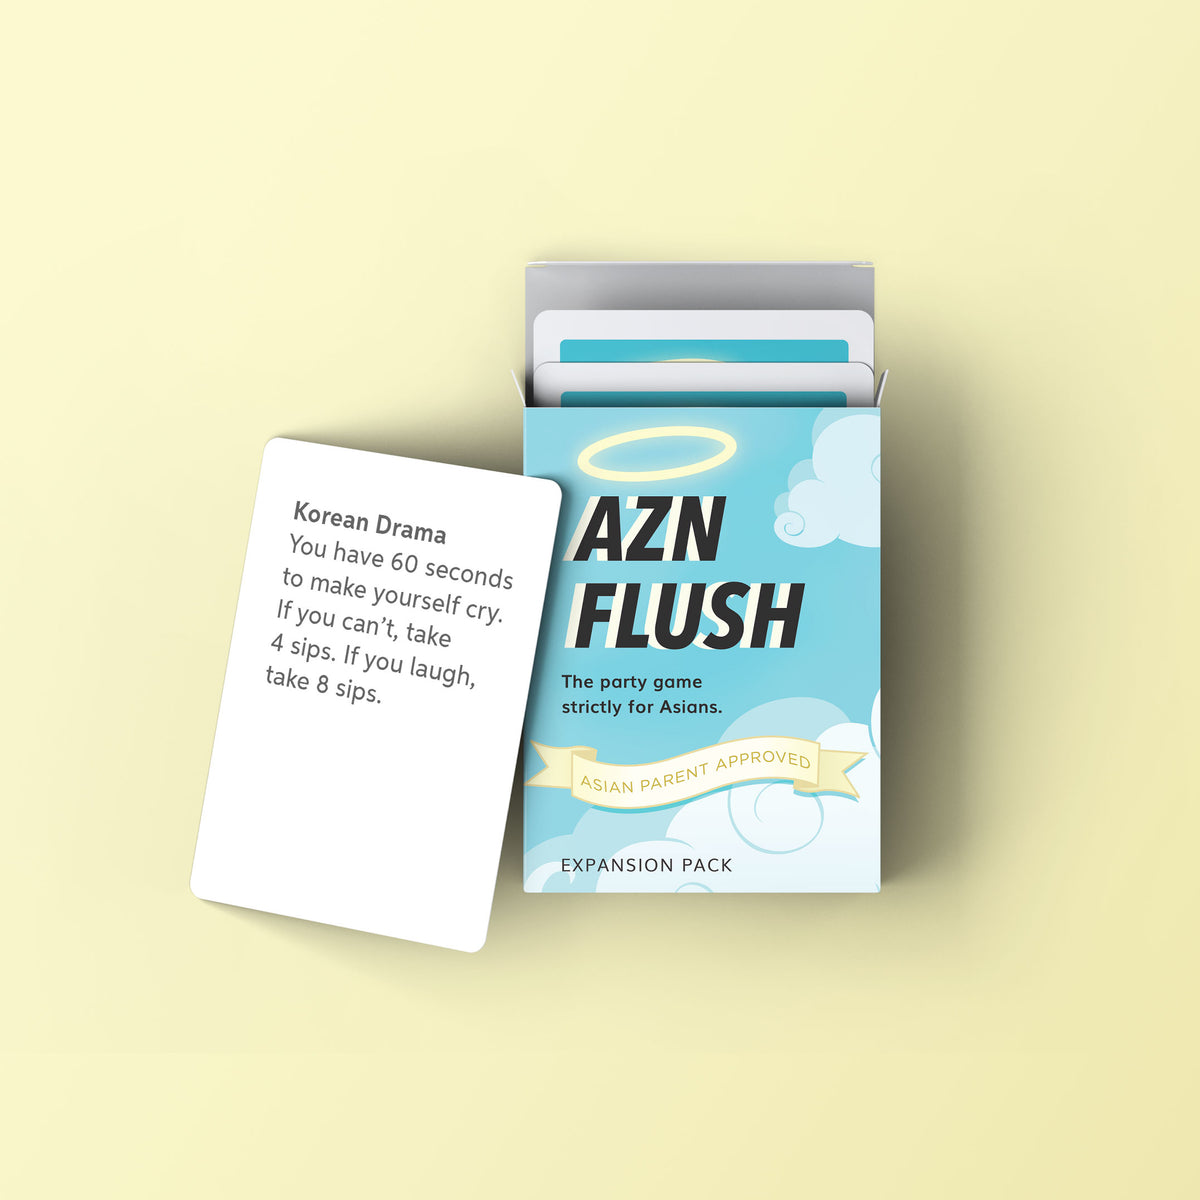 AZN FLUSH: ASIAN PARENT APPROVED PACK